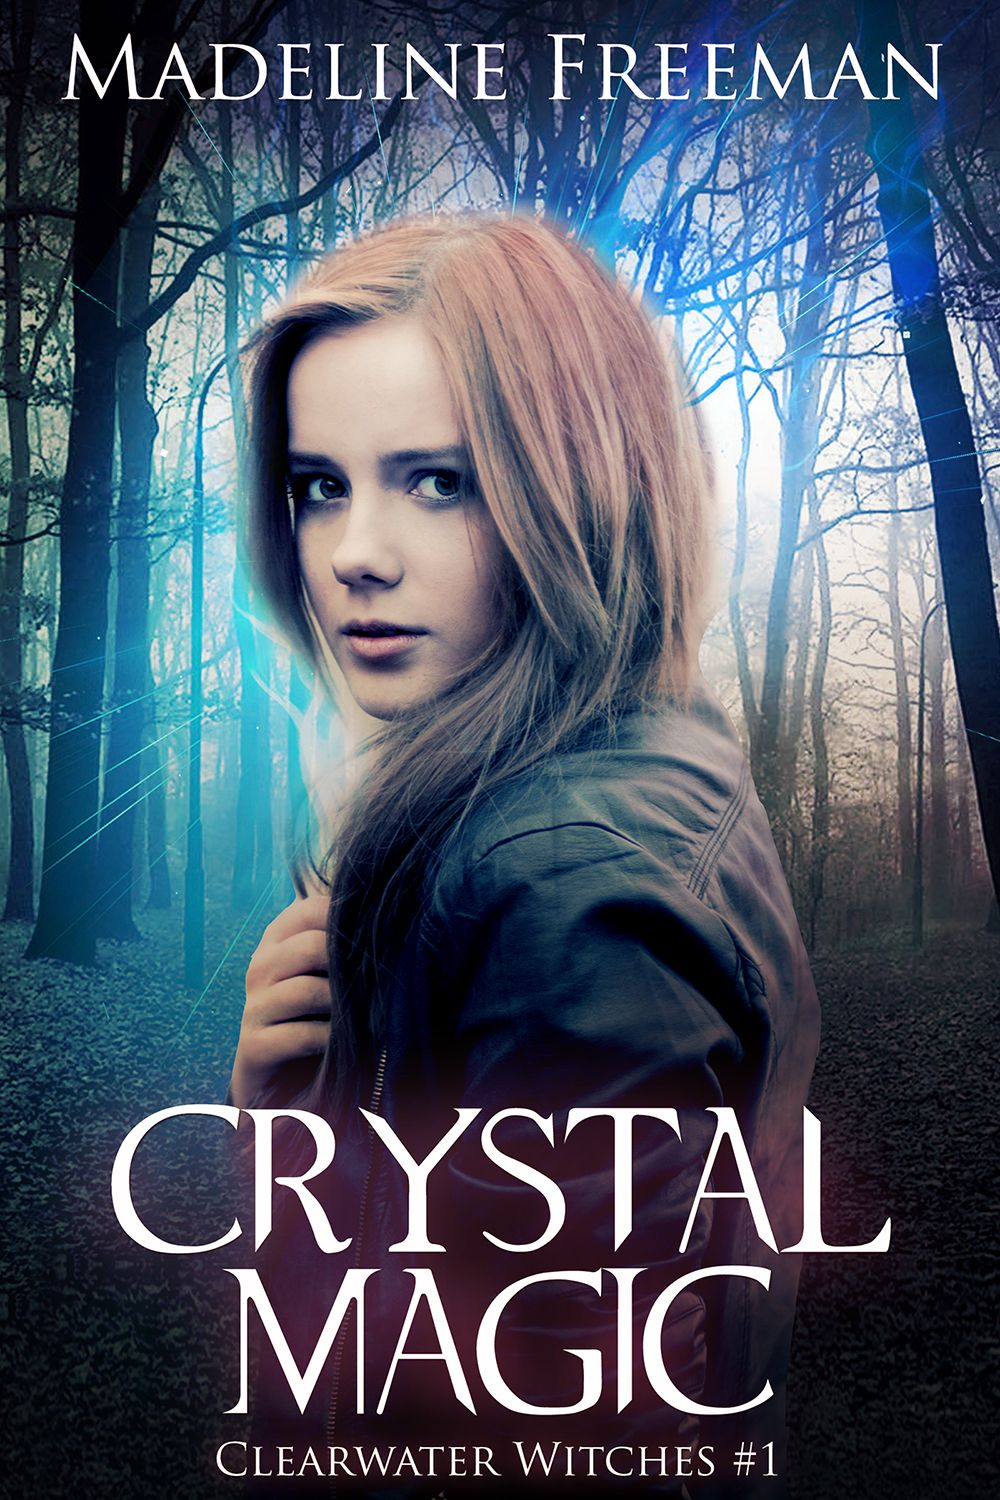 Crystal Magic by Madeline Freeman. Fast-paced paranormal adventure. Free! http://www.ebooksoda.com/ebook-deals/20424-crystal-magic-by-madeline-freeman